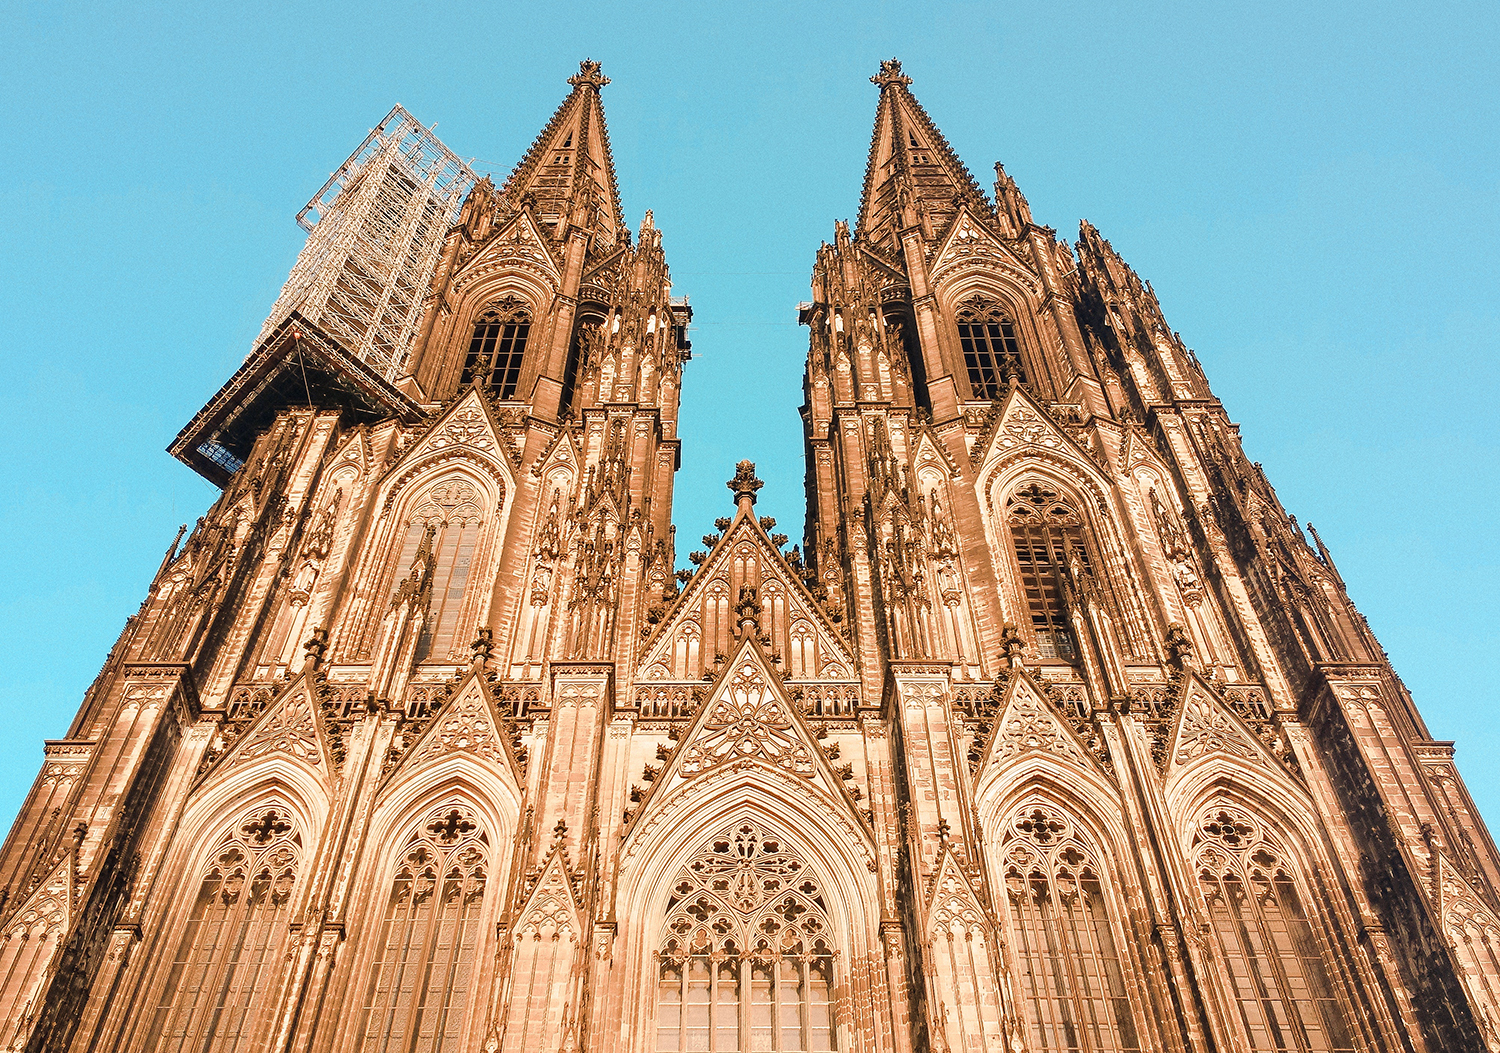 Cologne Cathedral Photo by  Dominik Kuhn  on  Unsplash